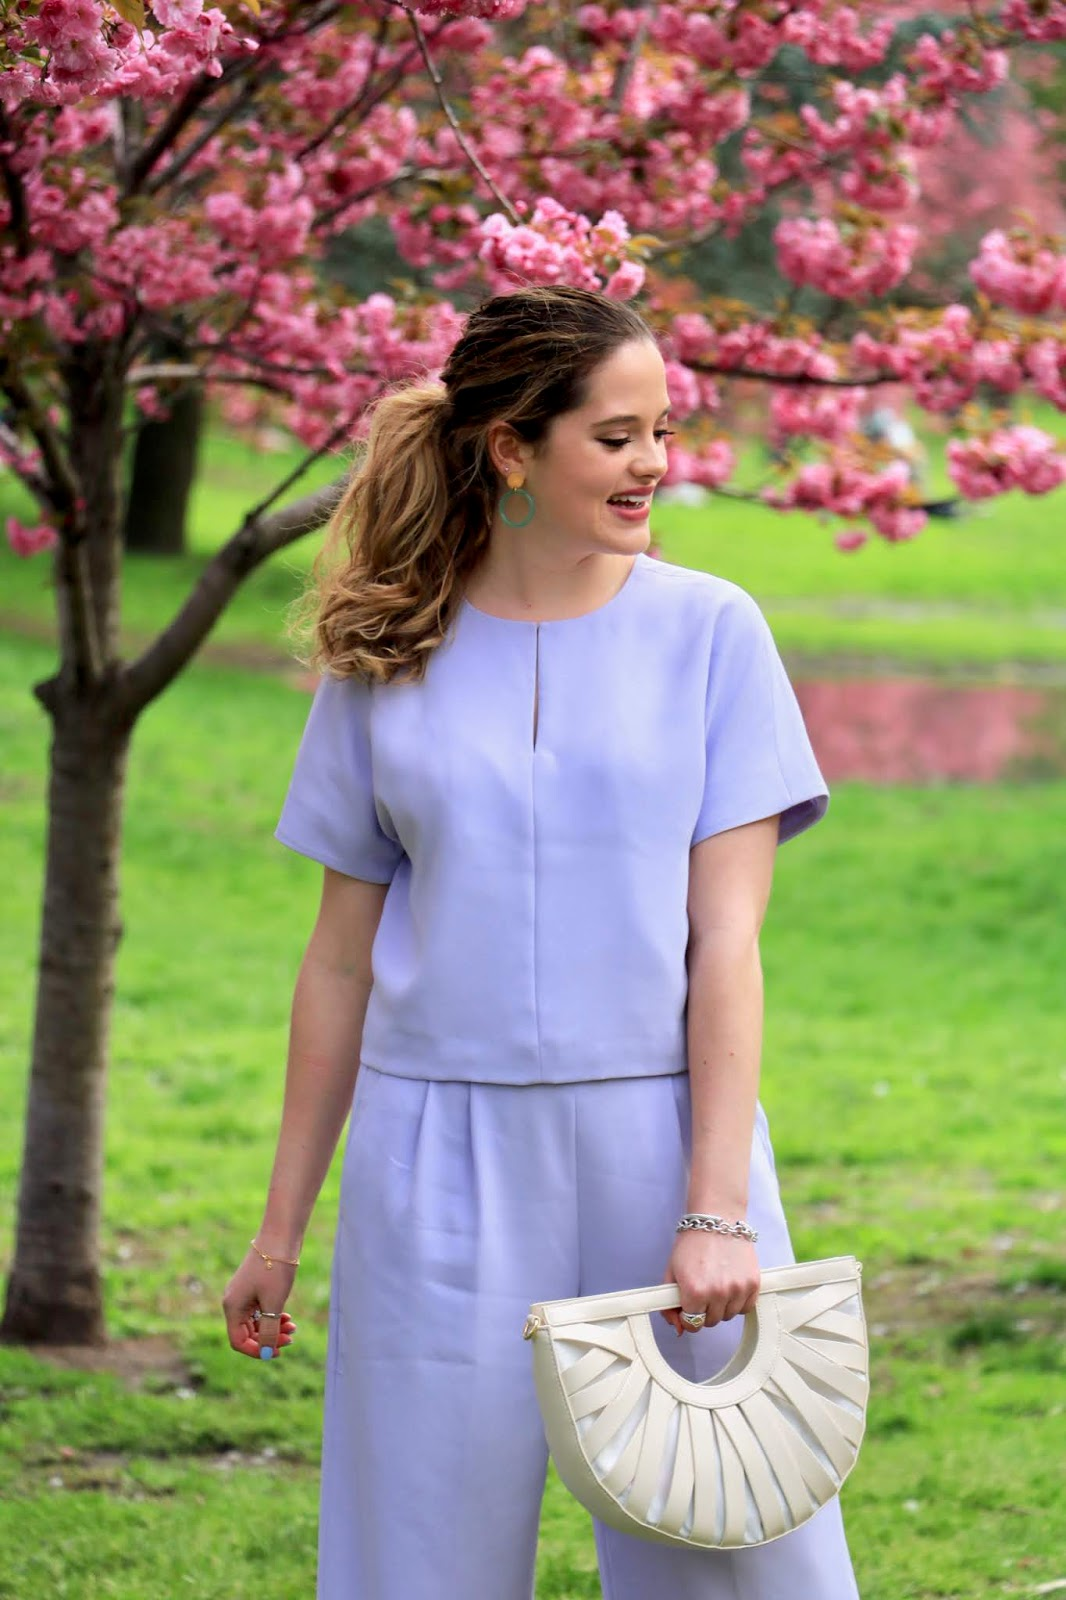 Nyc fashion blogger Kathleen Harper in Central Park with the cherry blossoms